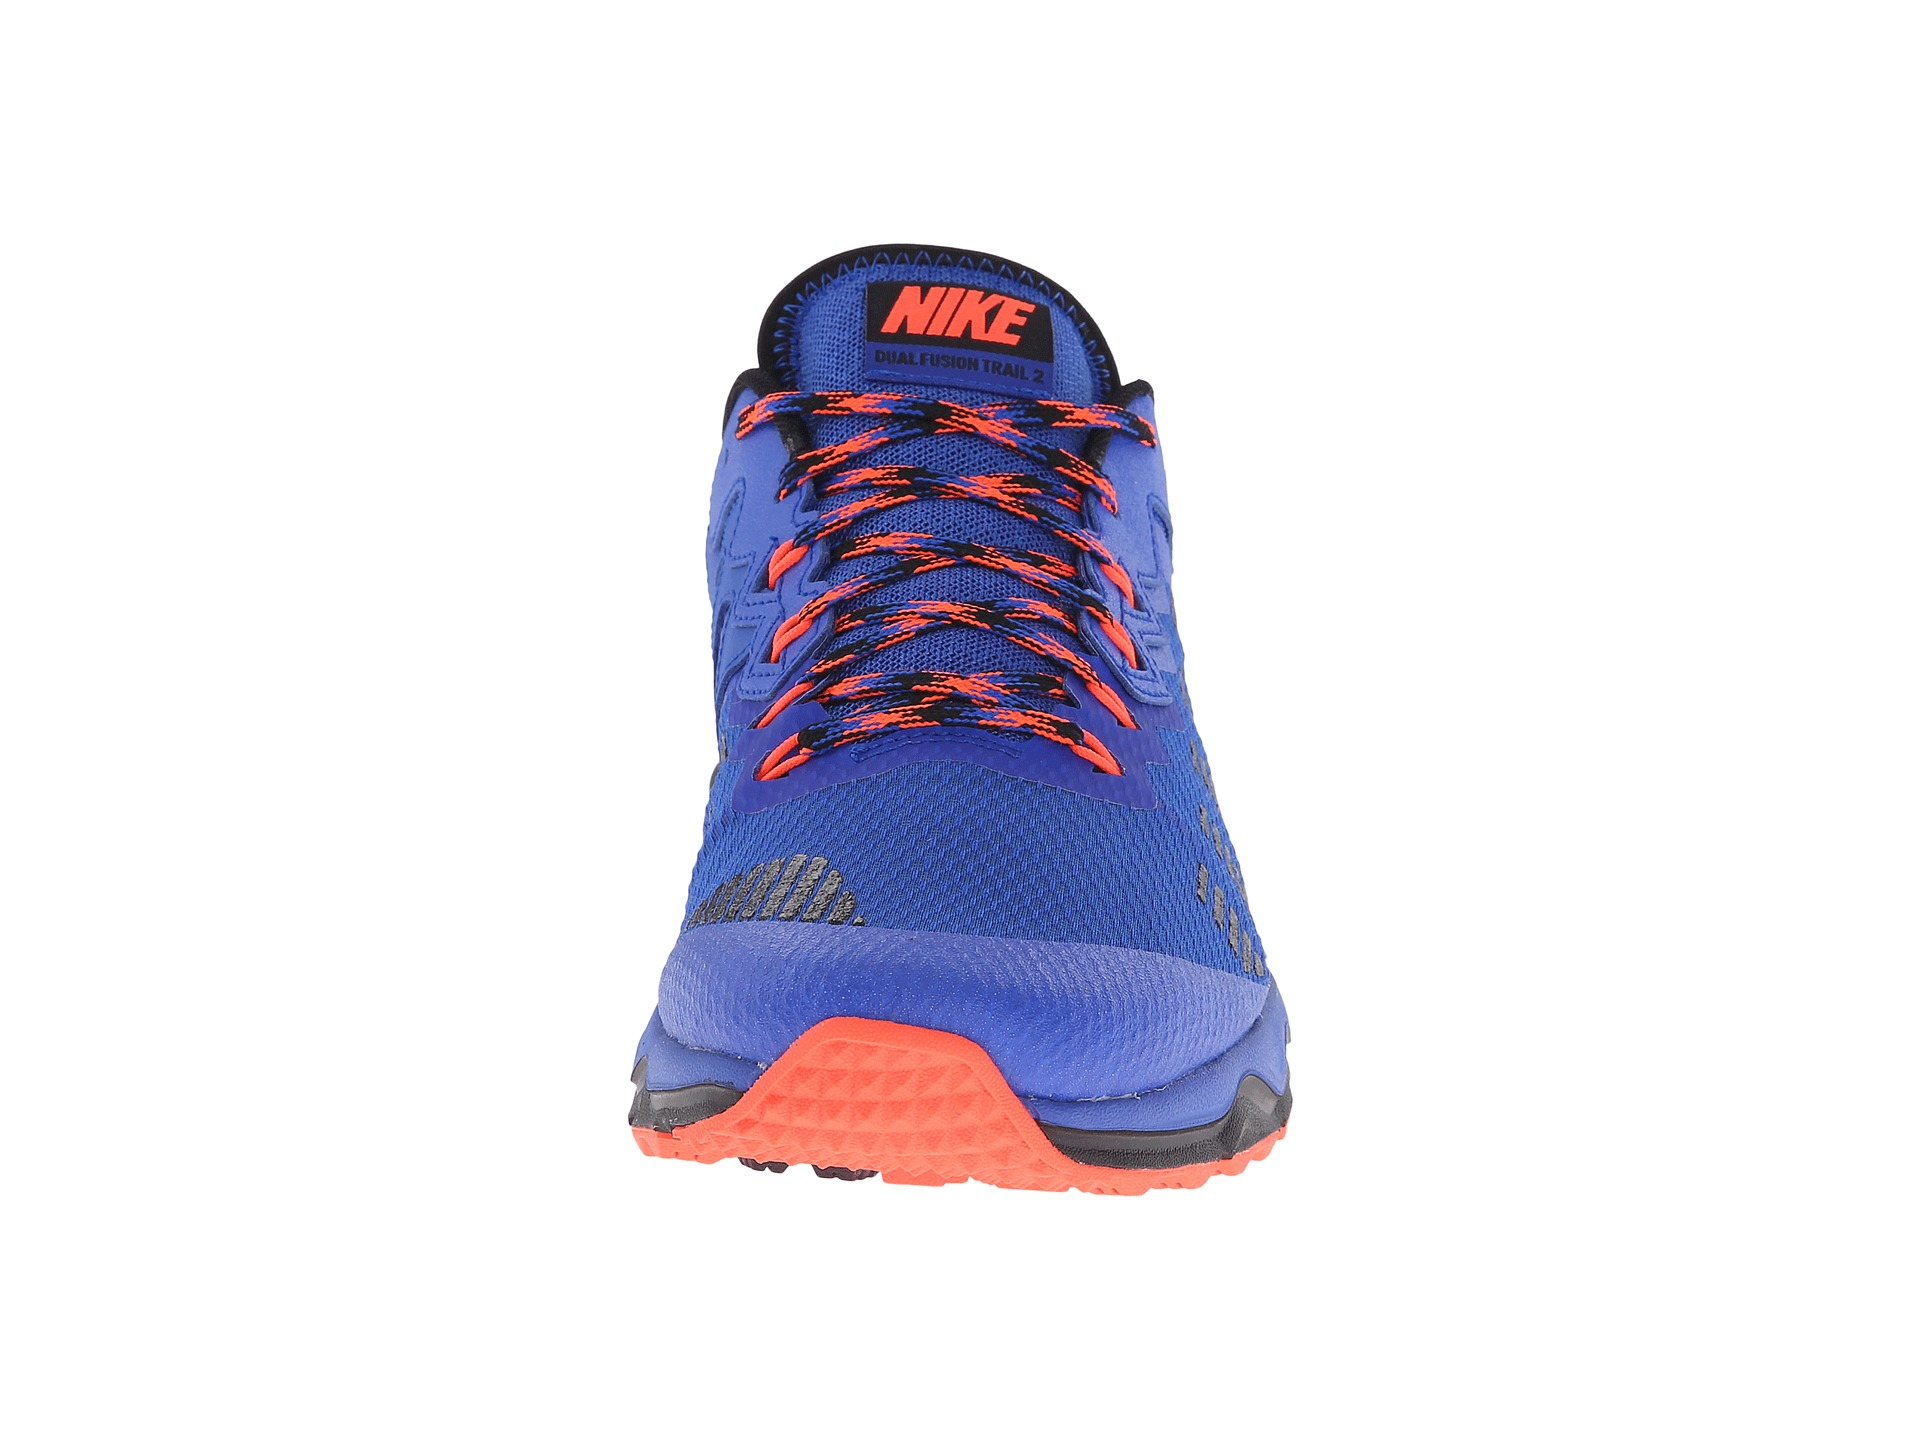 Is The Nike Dual Racer A Running Shoe